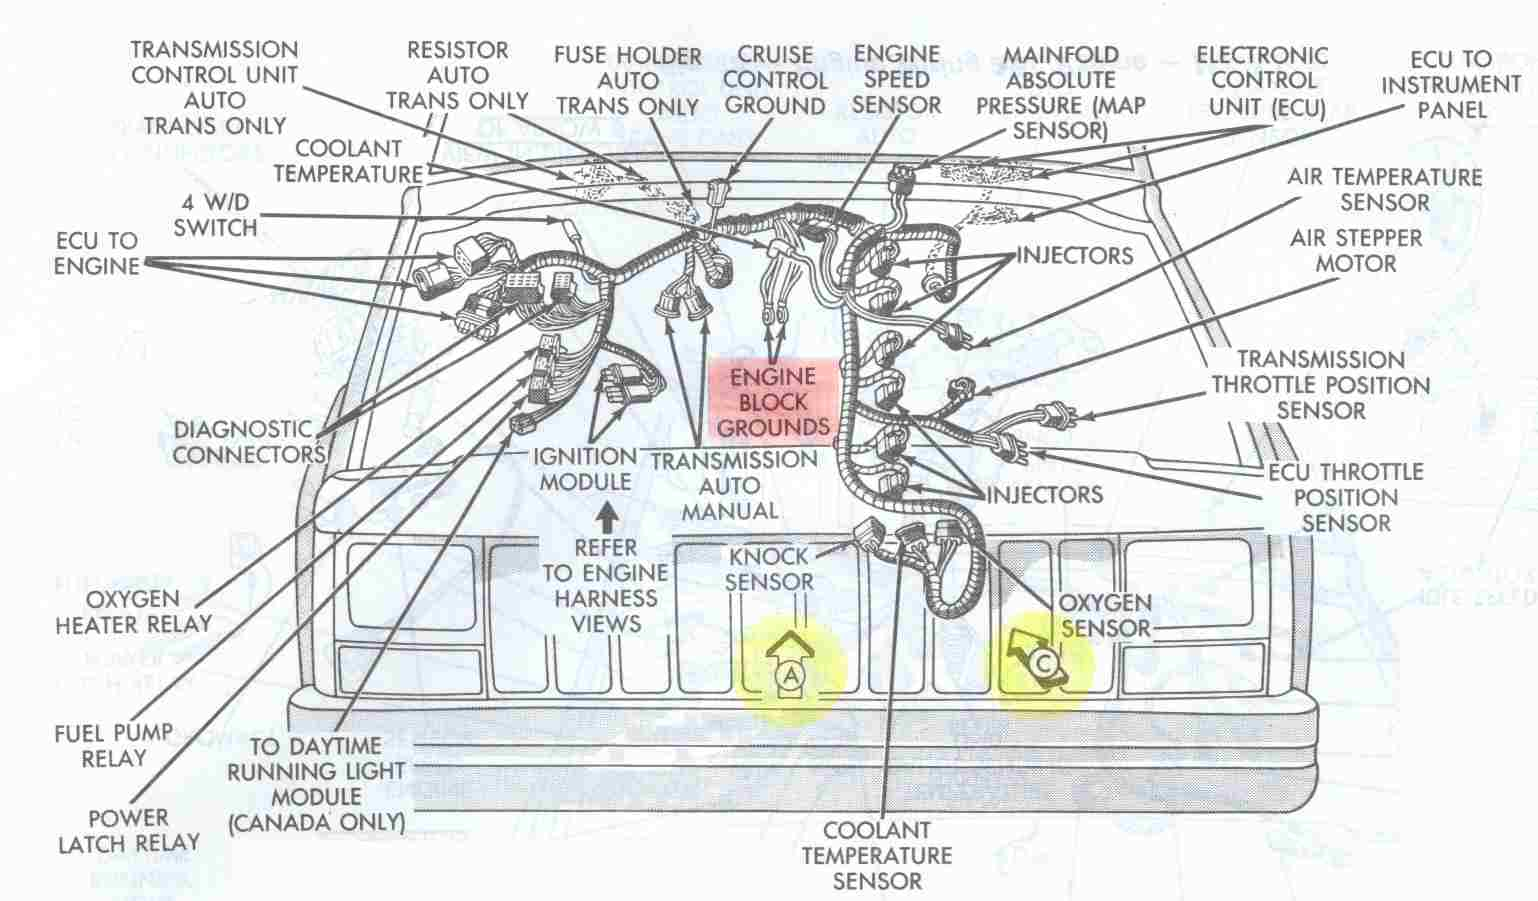 Electrical_Engine_Ground_Points_Overview jeep cherokee electrical diagnosing erratic behavior of engine wiring diagram for 1998 jeep cherokee at highcare.asia